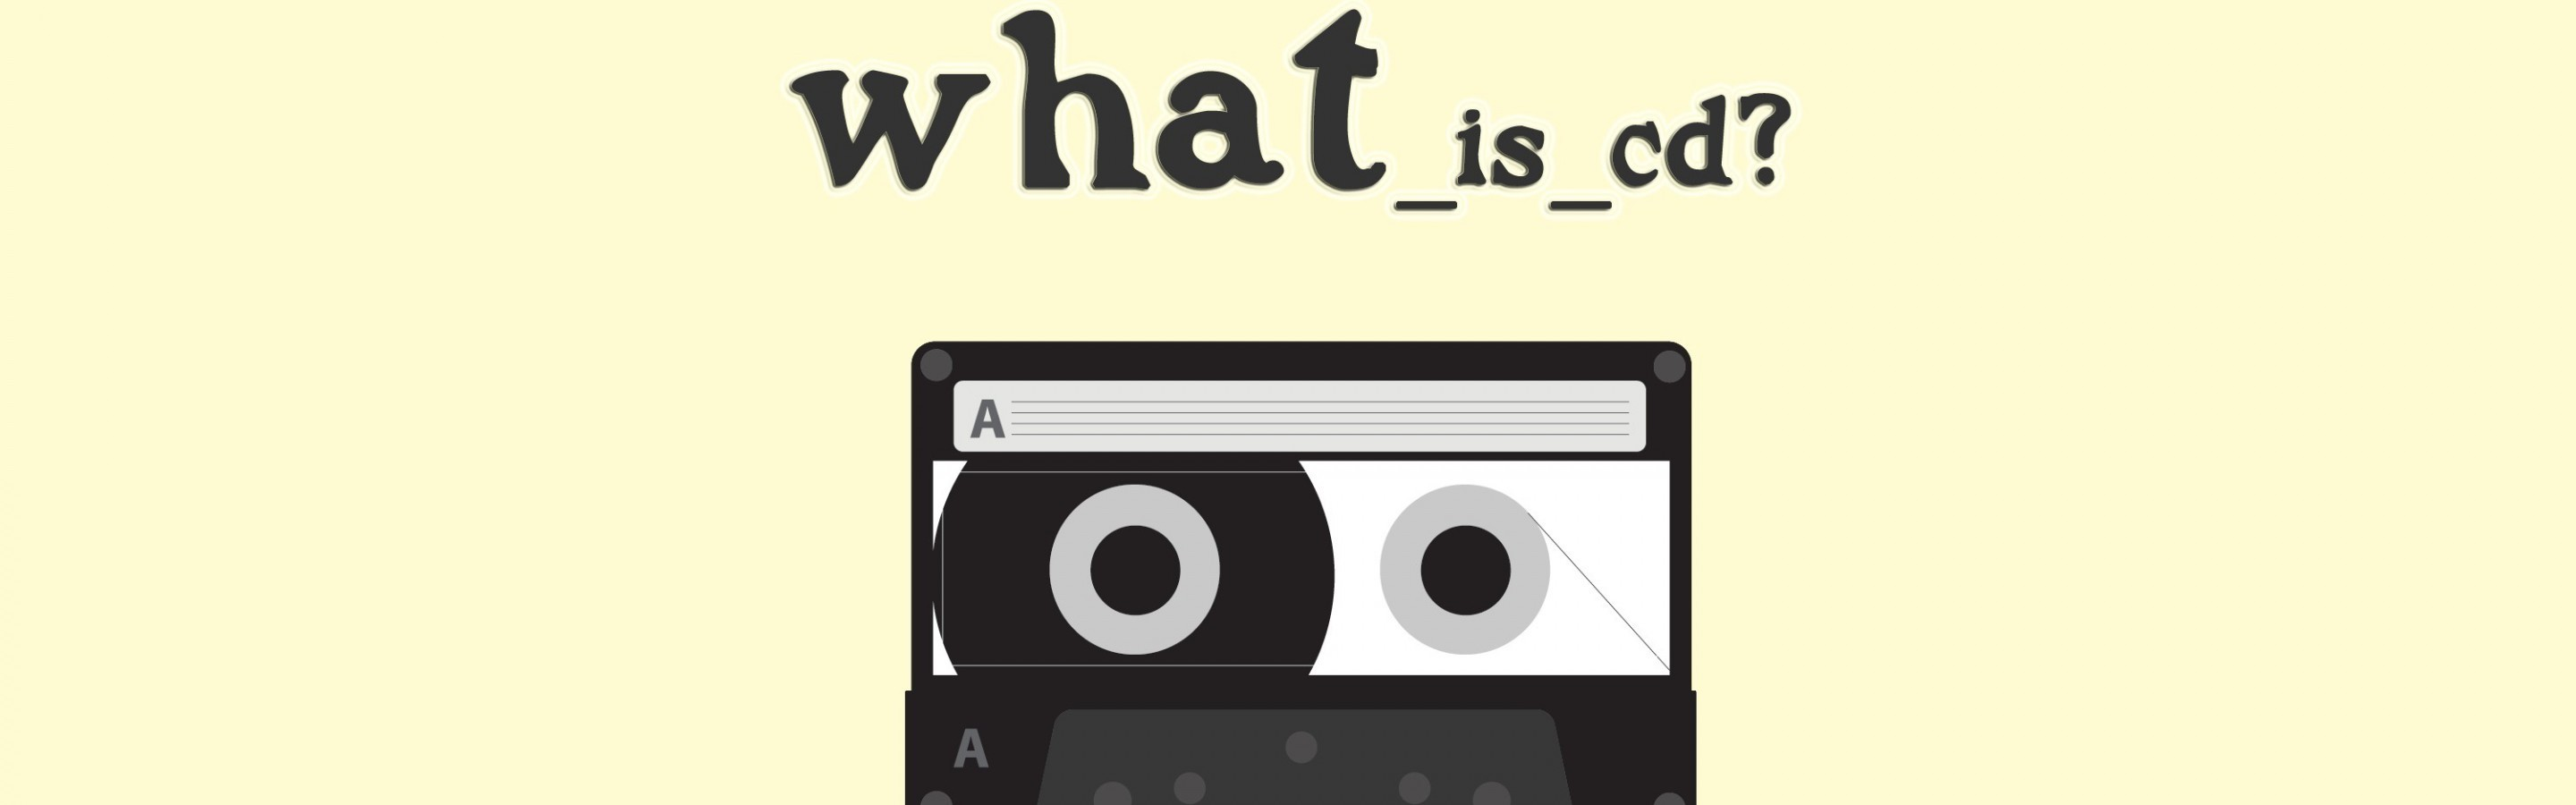 Music cassette Tape oldschool HD Wallpaper